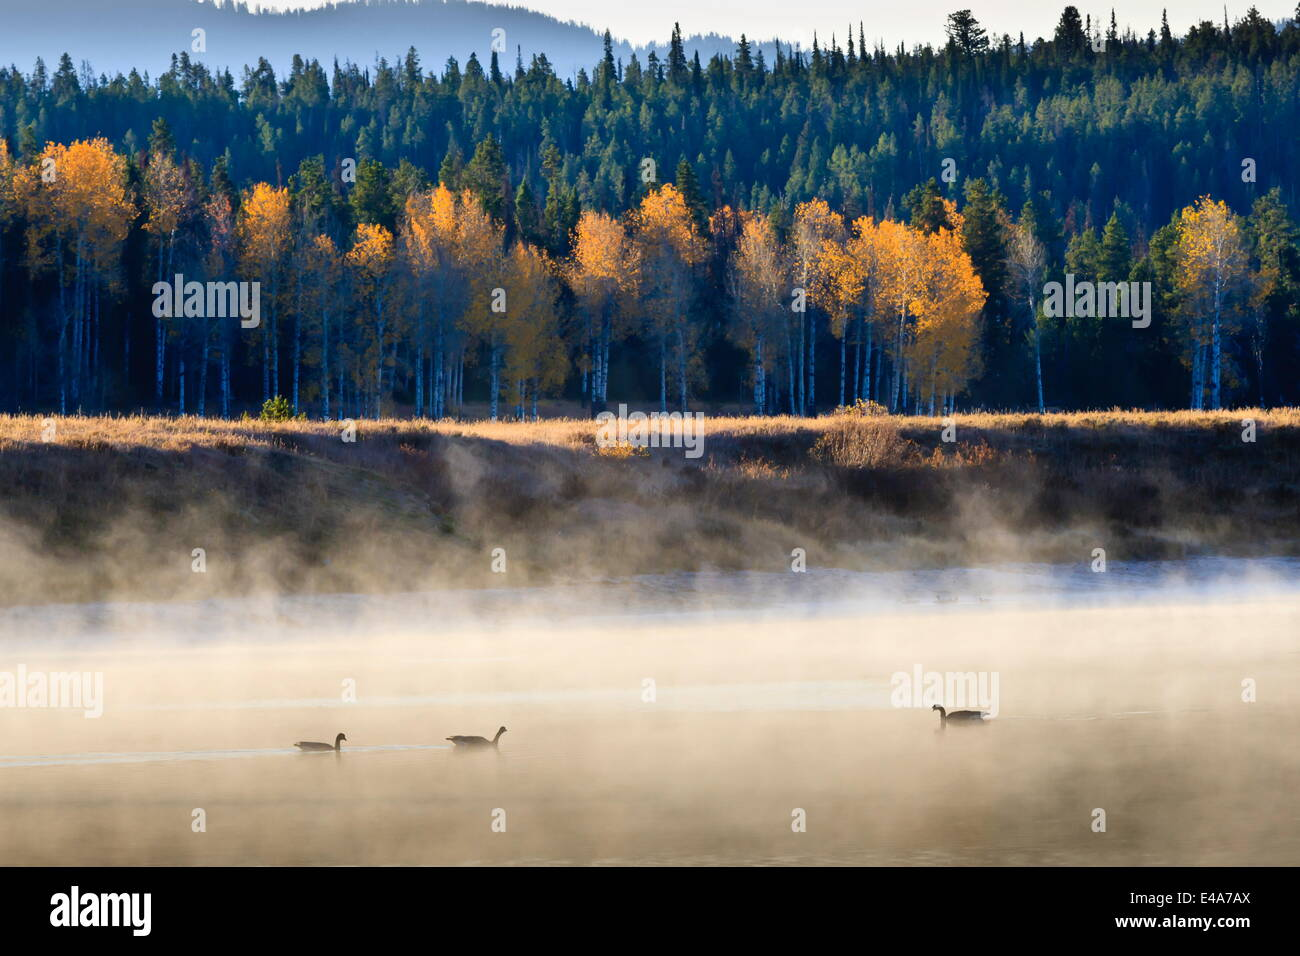 Wildfowl on Snake River surrounded by a cold dawn mist in autumn (fall), Grand Teton National Park, Wyoming, USA - Stock Image